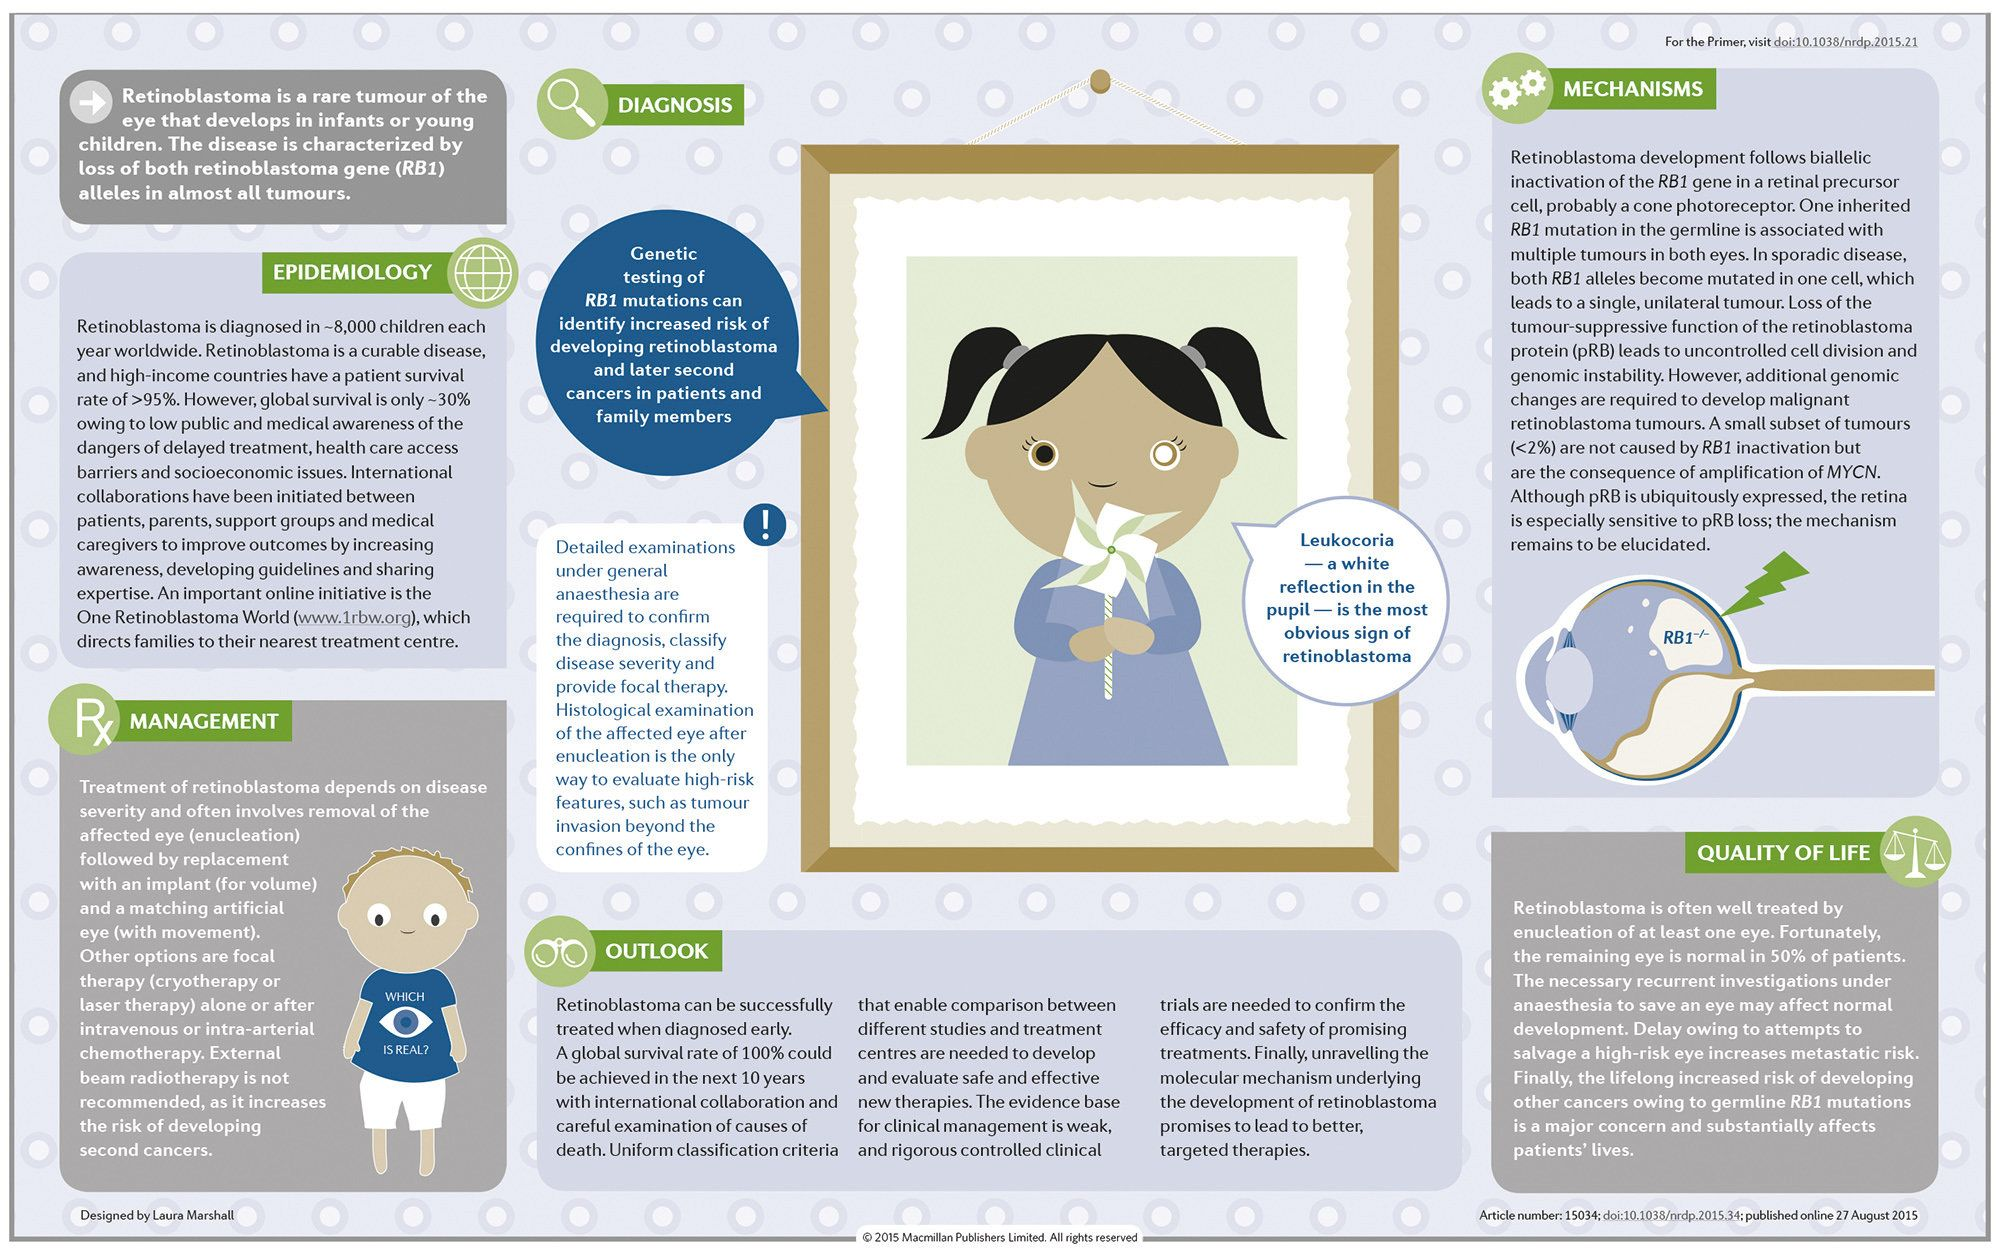 This PrimeView is an illustrated summary of the Primer for